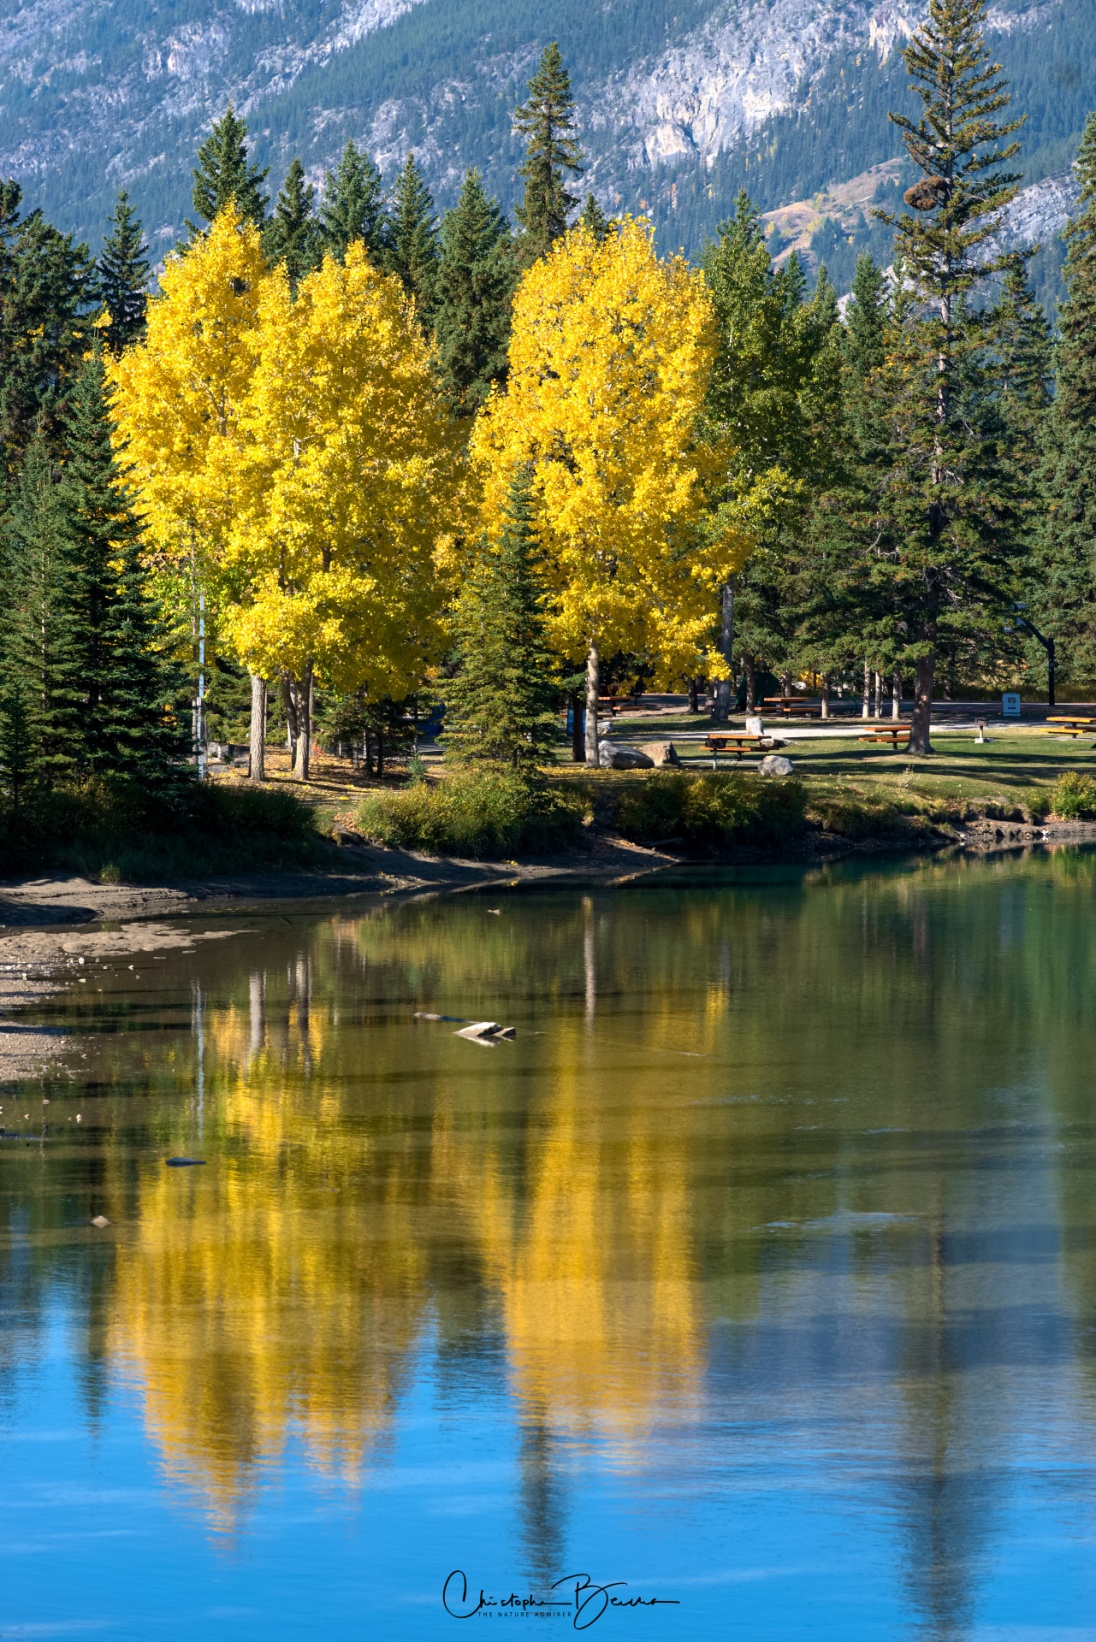 The reflection of these yellow Aspen trees on Bow River captured my attention.